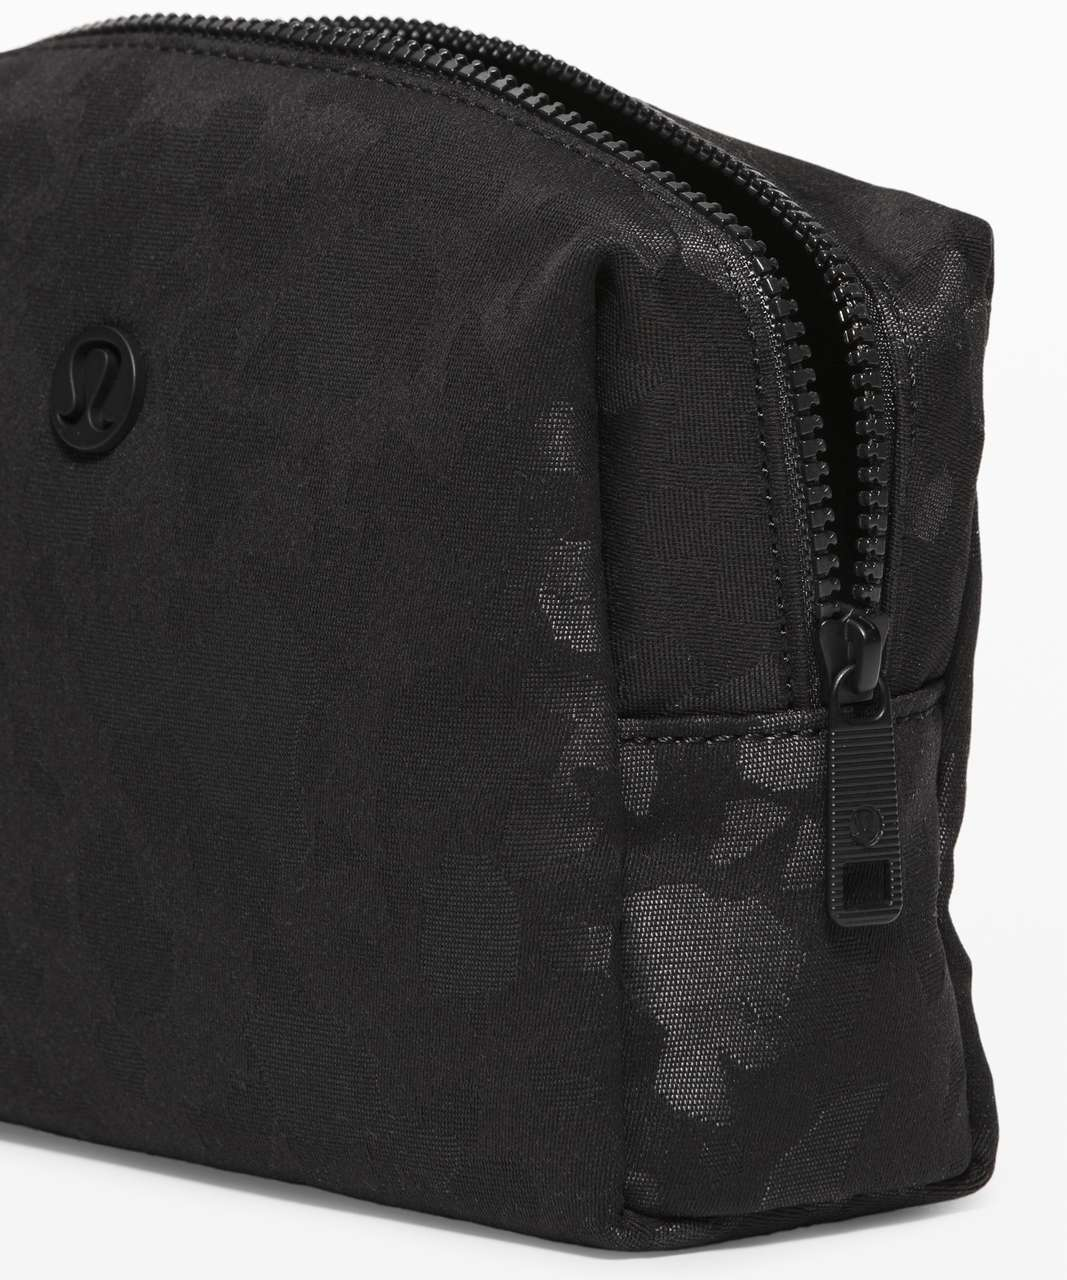 Lululemon All Your Small Things Pouch *Mini 2L - Fragment Camo Jacquard Black Deep Coal